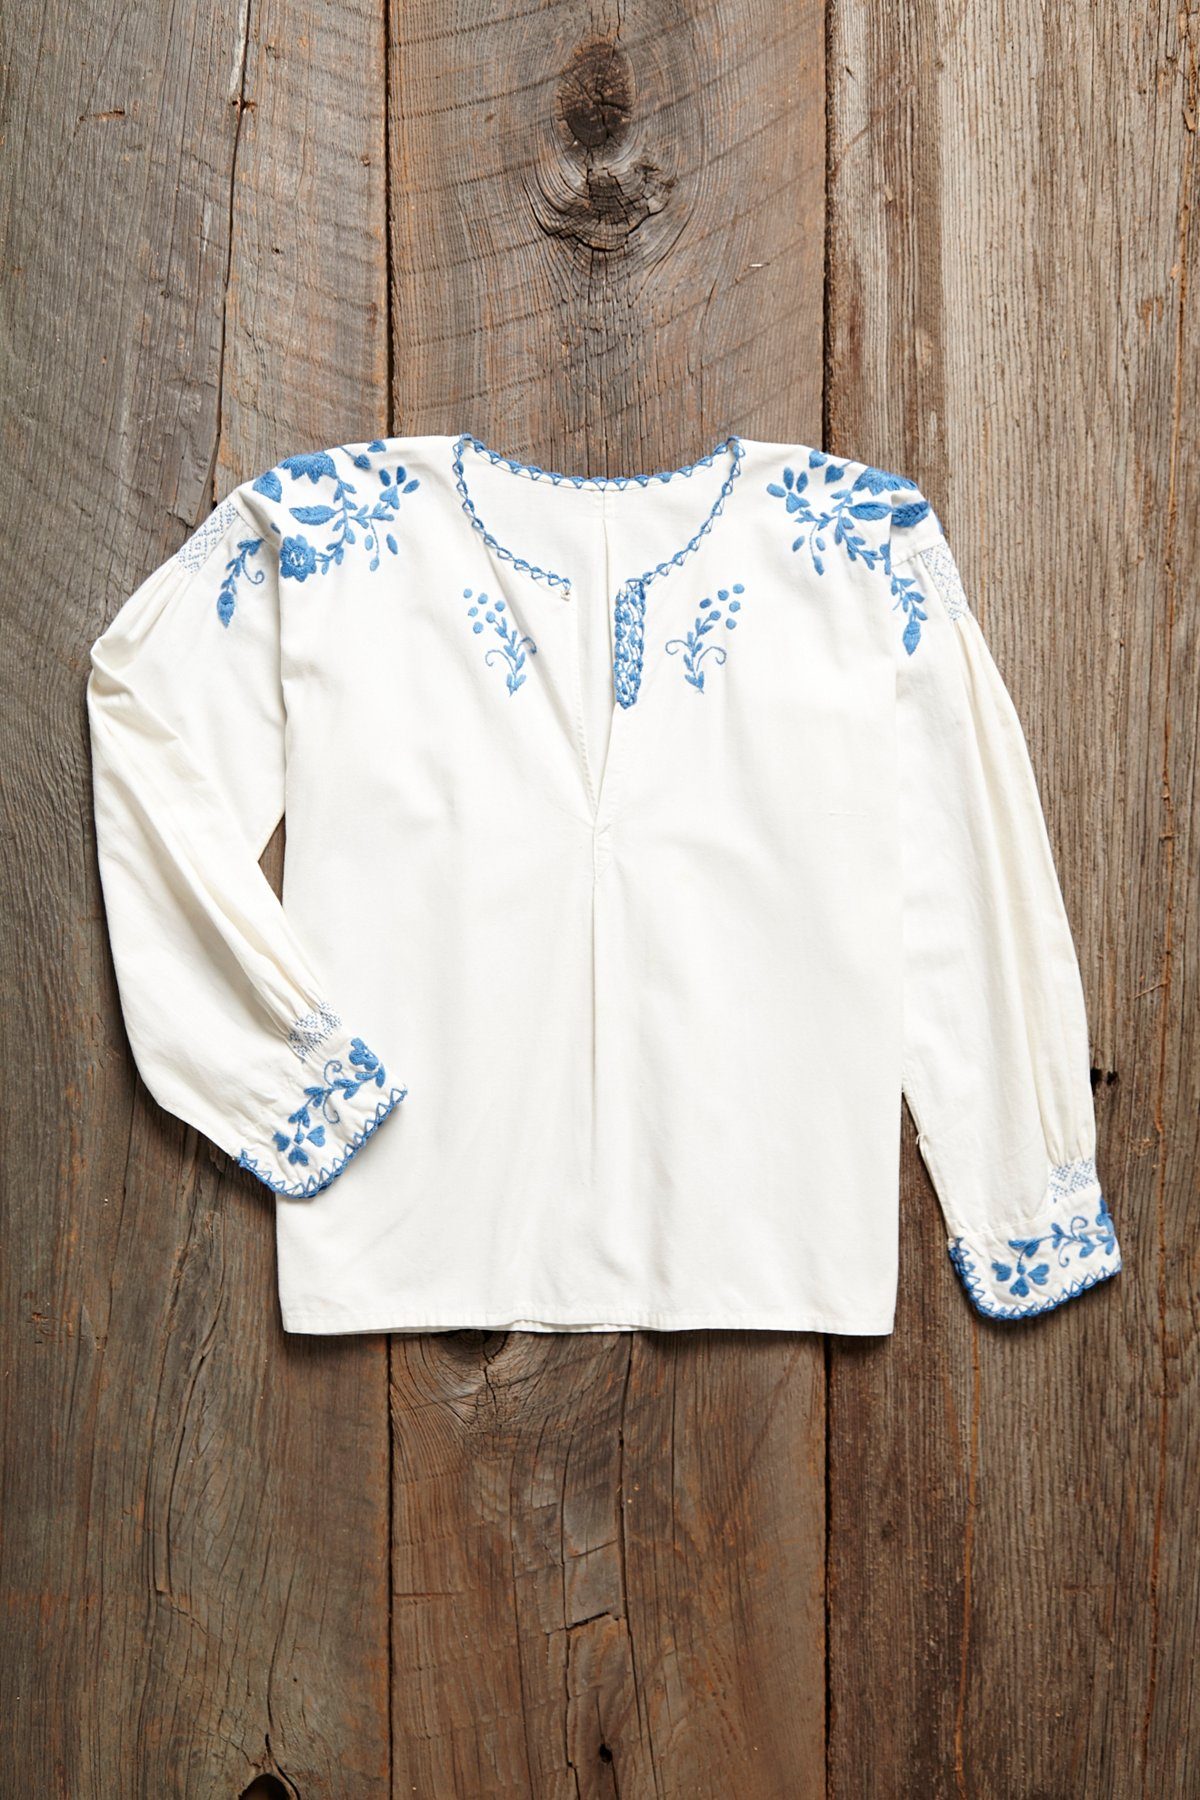 Vintage Hand Embroidered Top